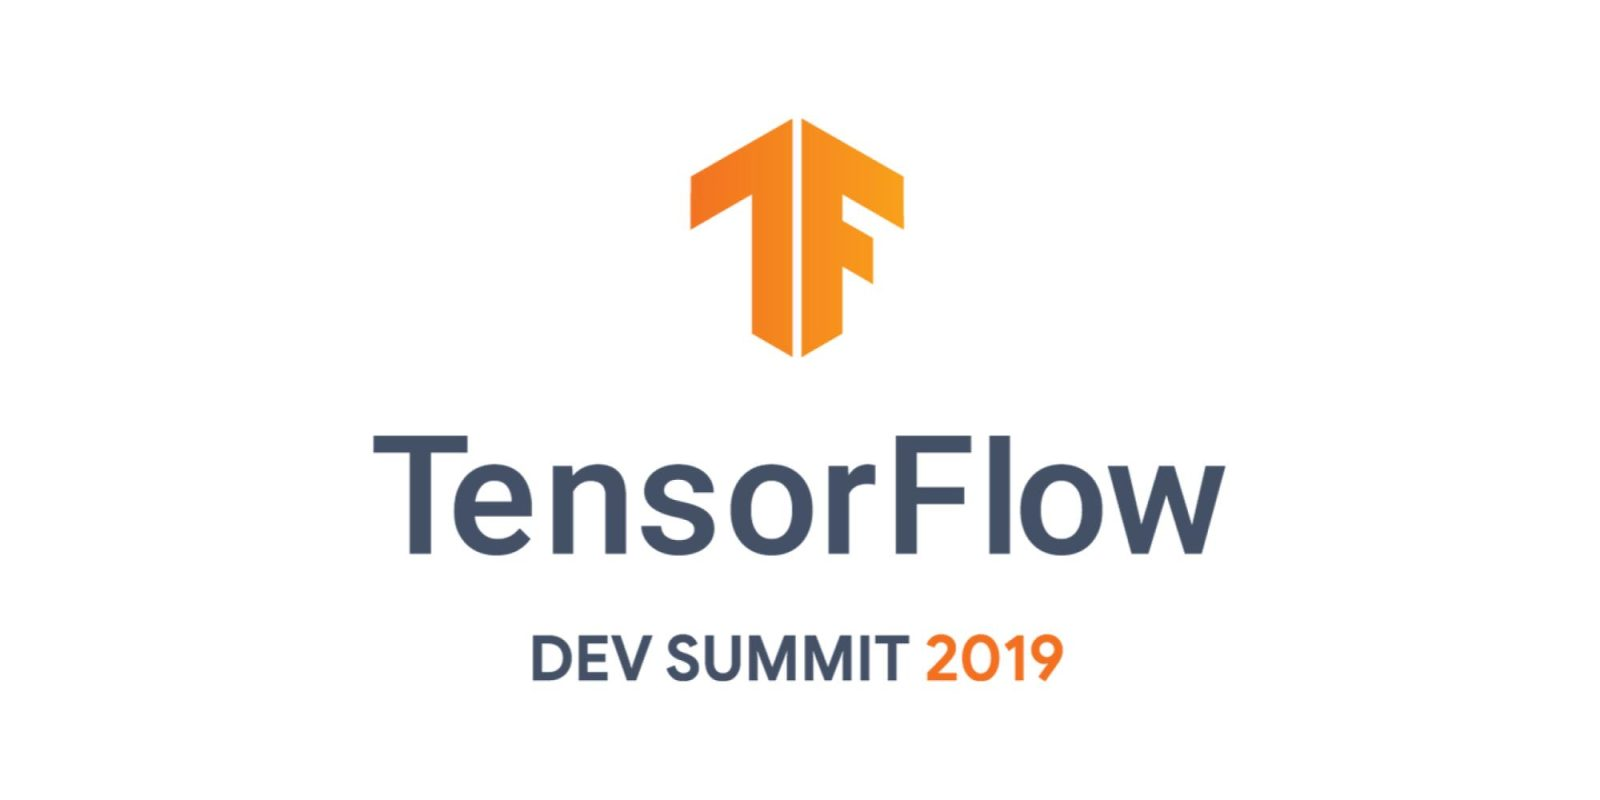 Google previews TensorFlow 2 0 alpha with focus on